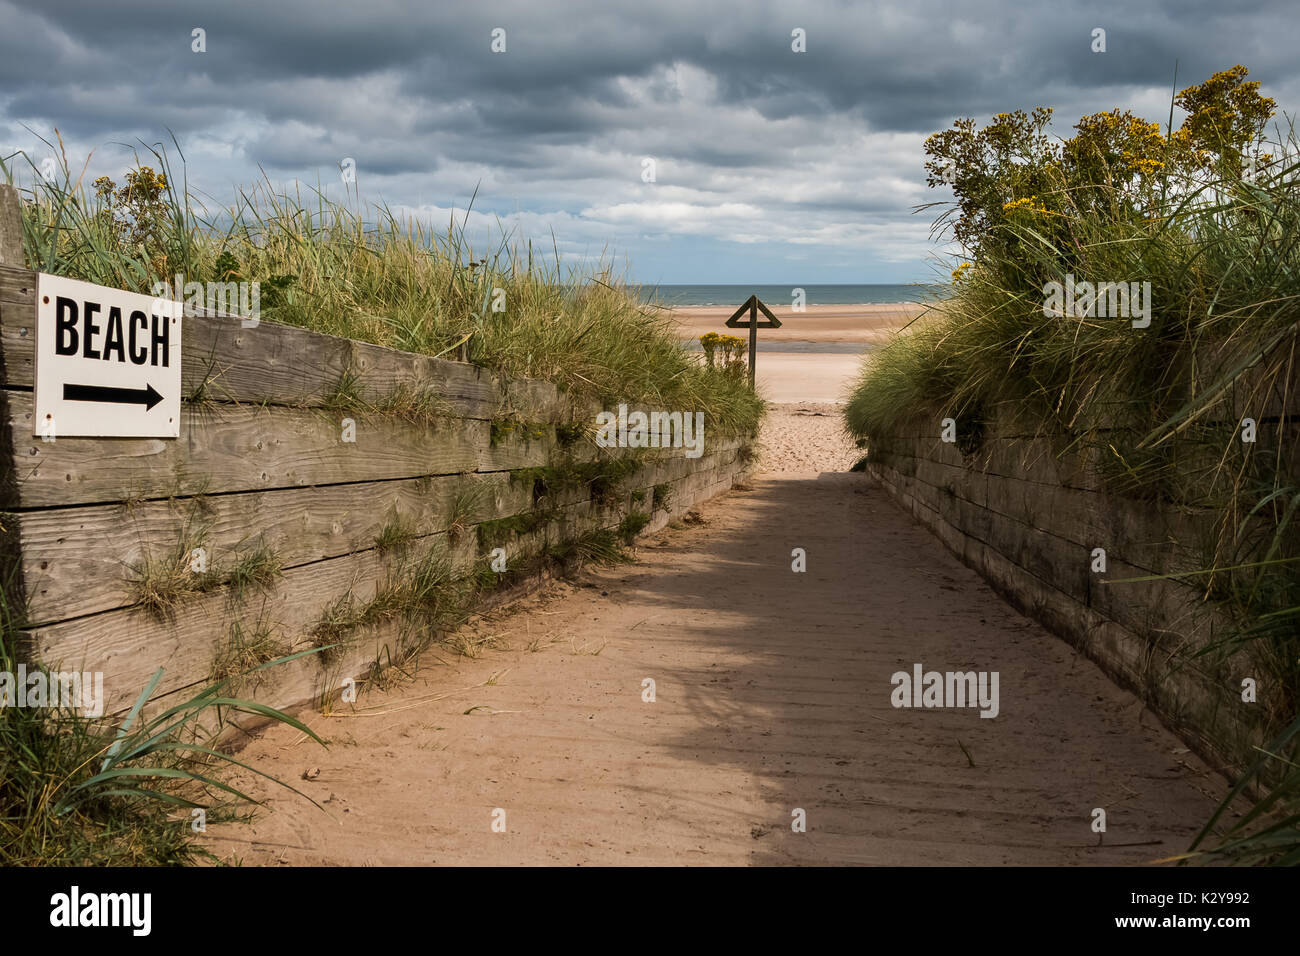 Access Track to Alnmouth Beach, Northumberland Coast, UK August 2017 - Stock Image